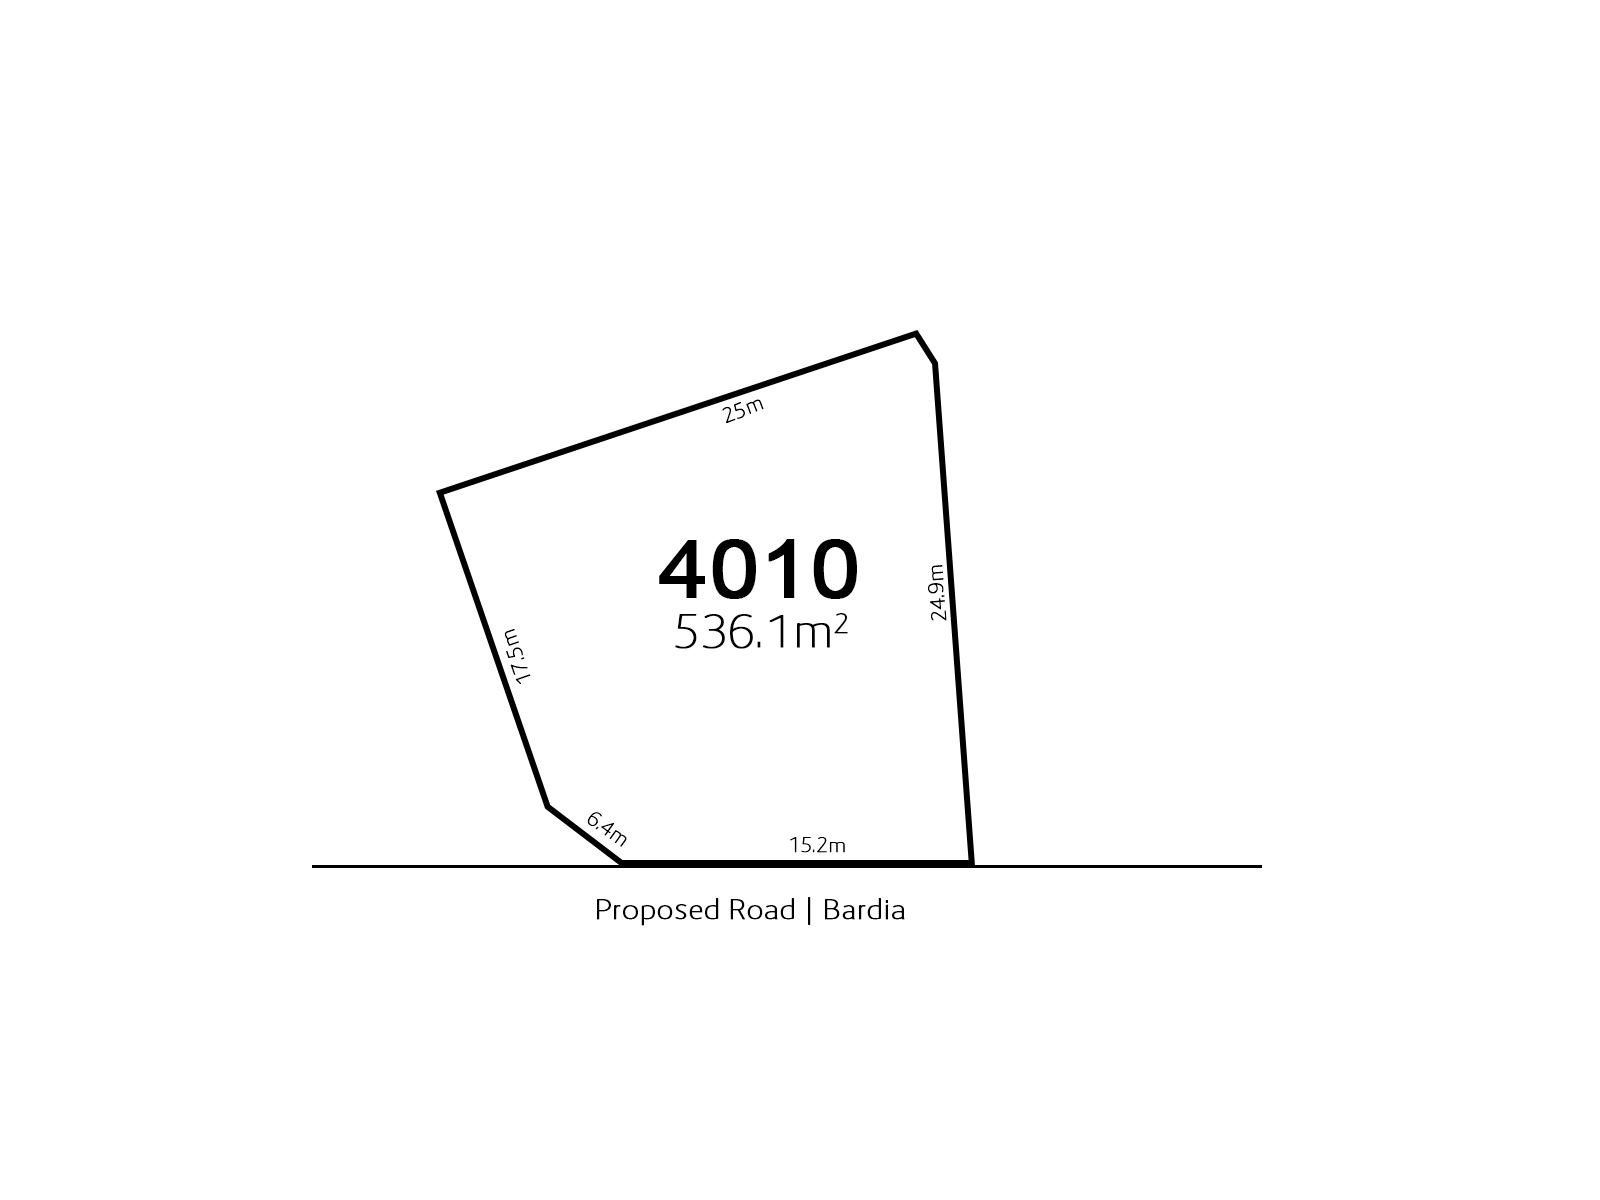 Bardia LOT 4010 Proposed Road | Bardia